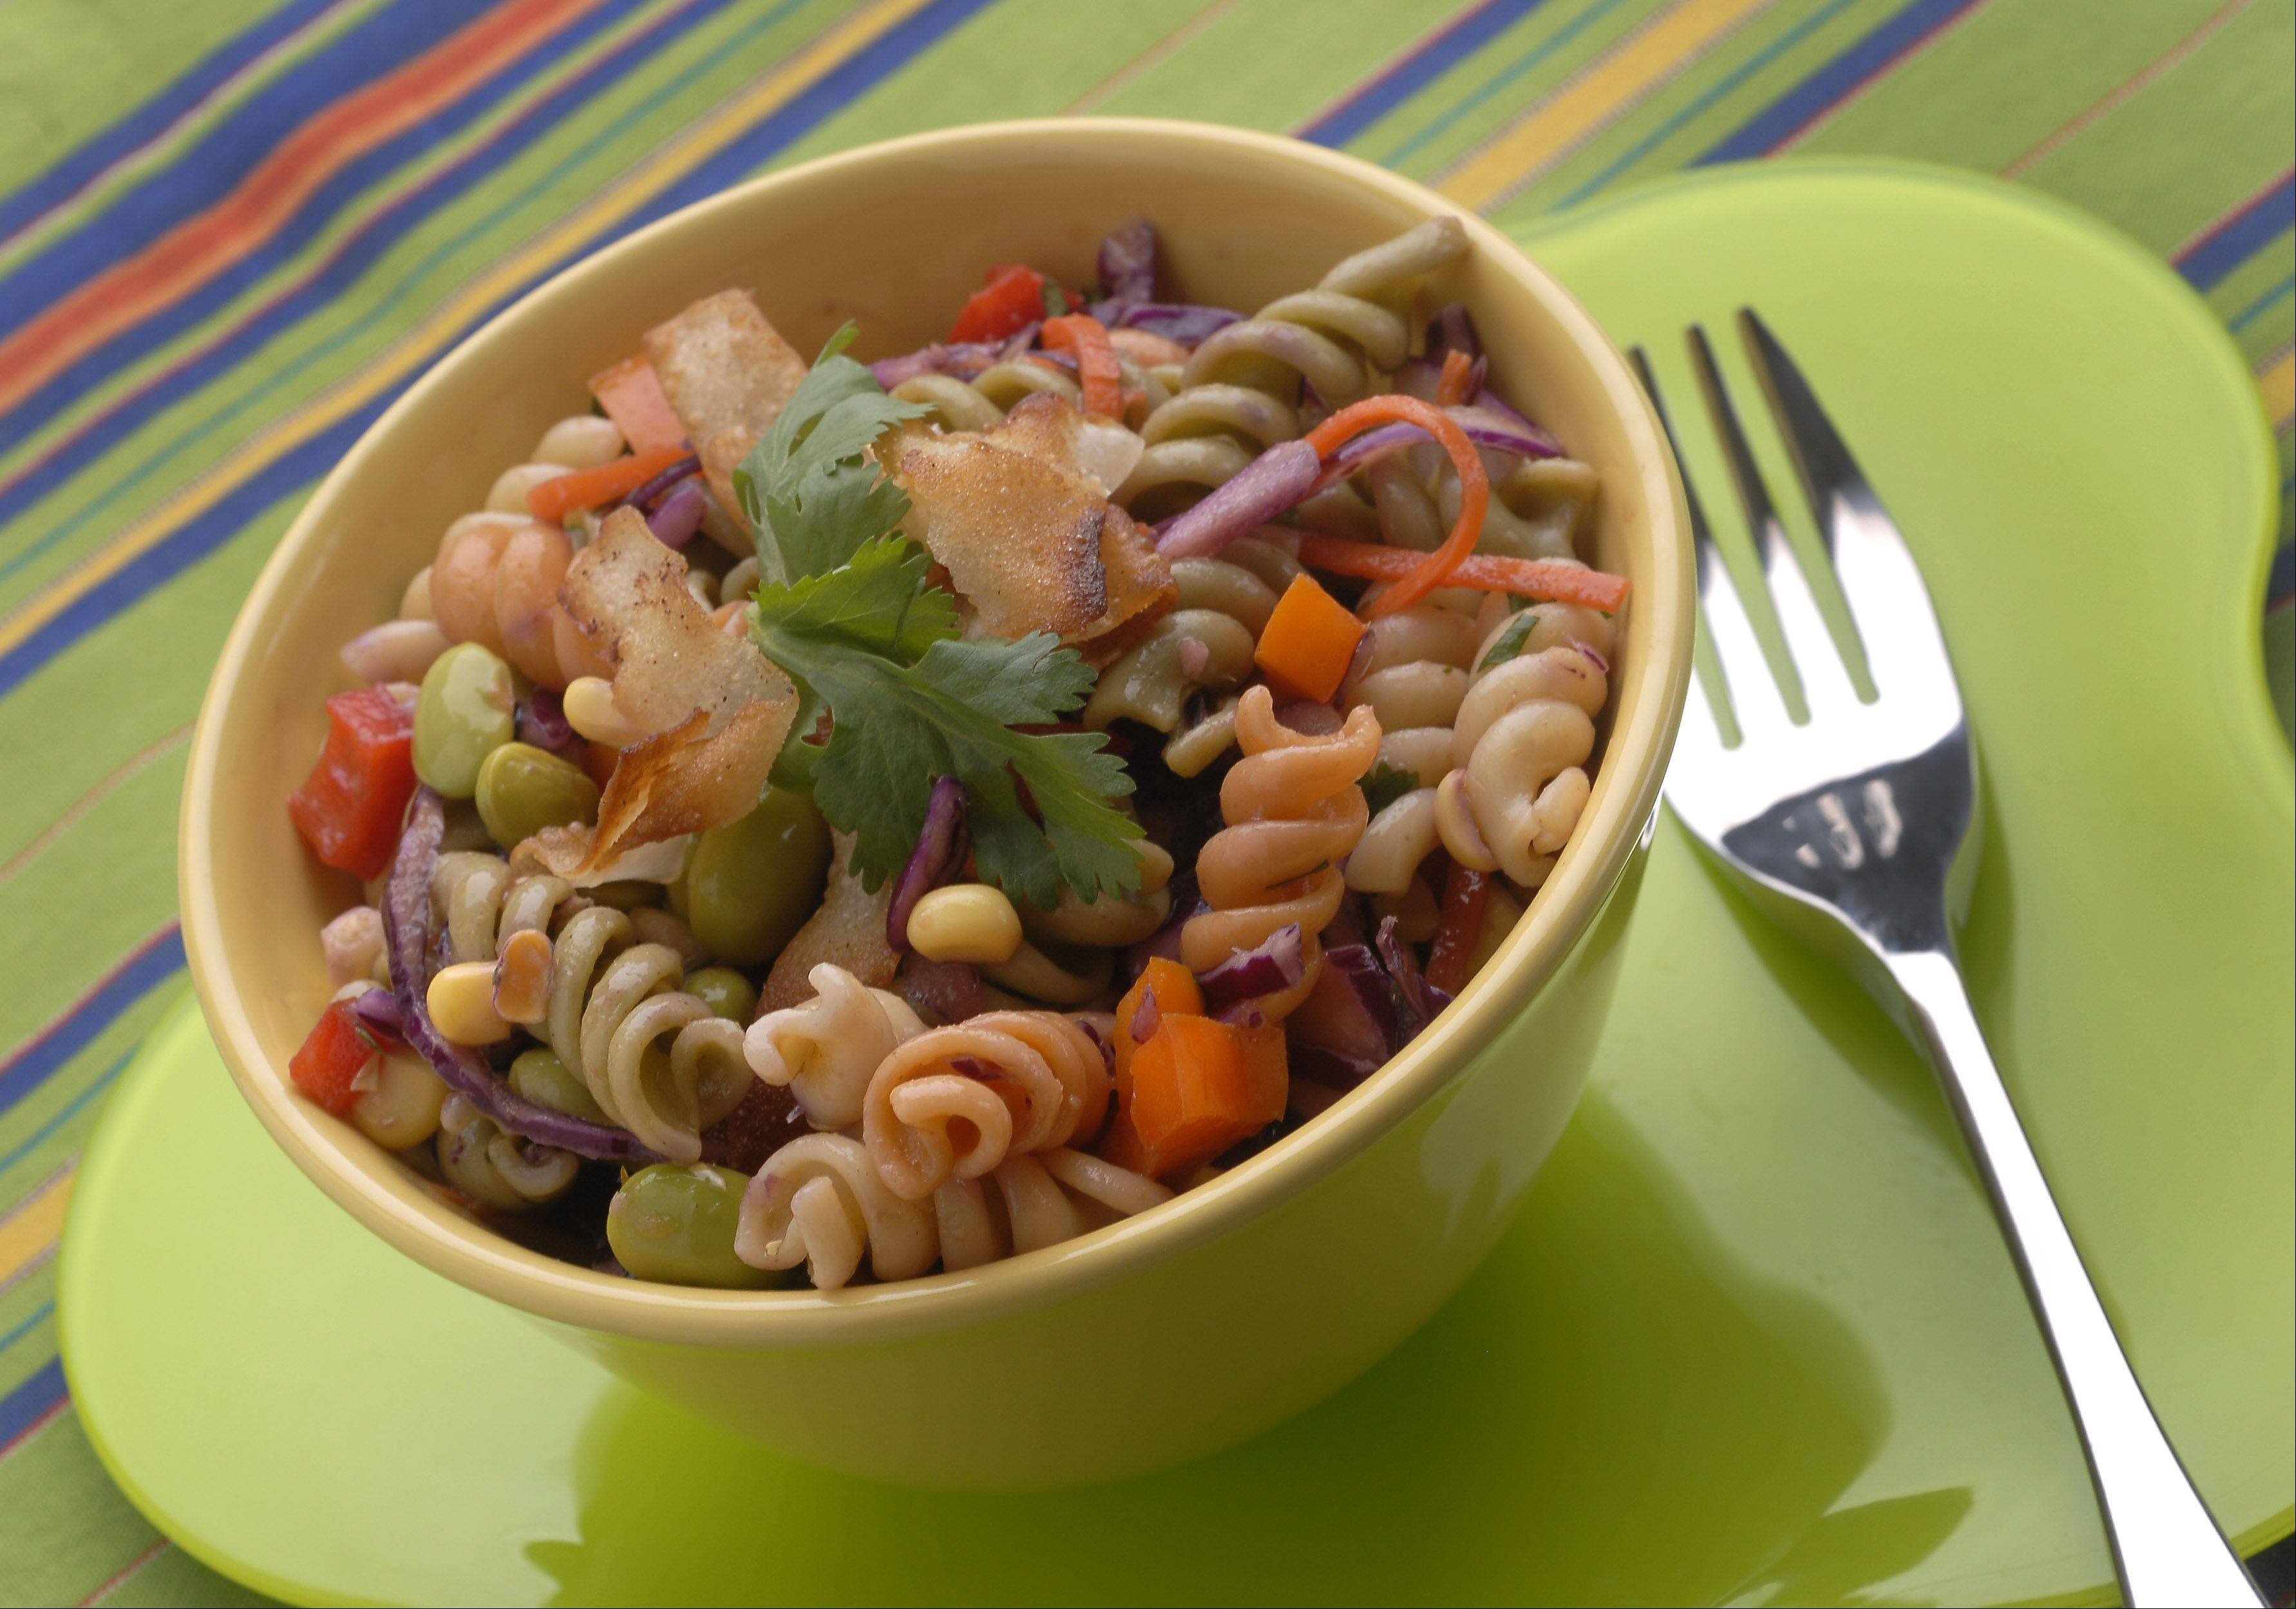 Rainbow salad highlights healthful veggies